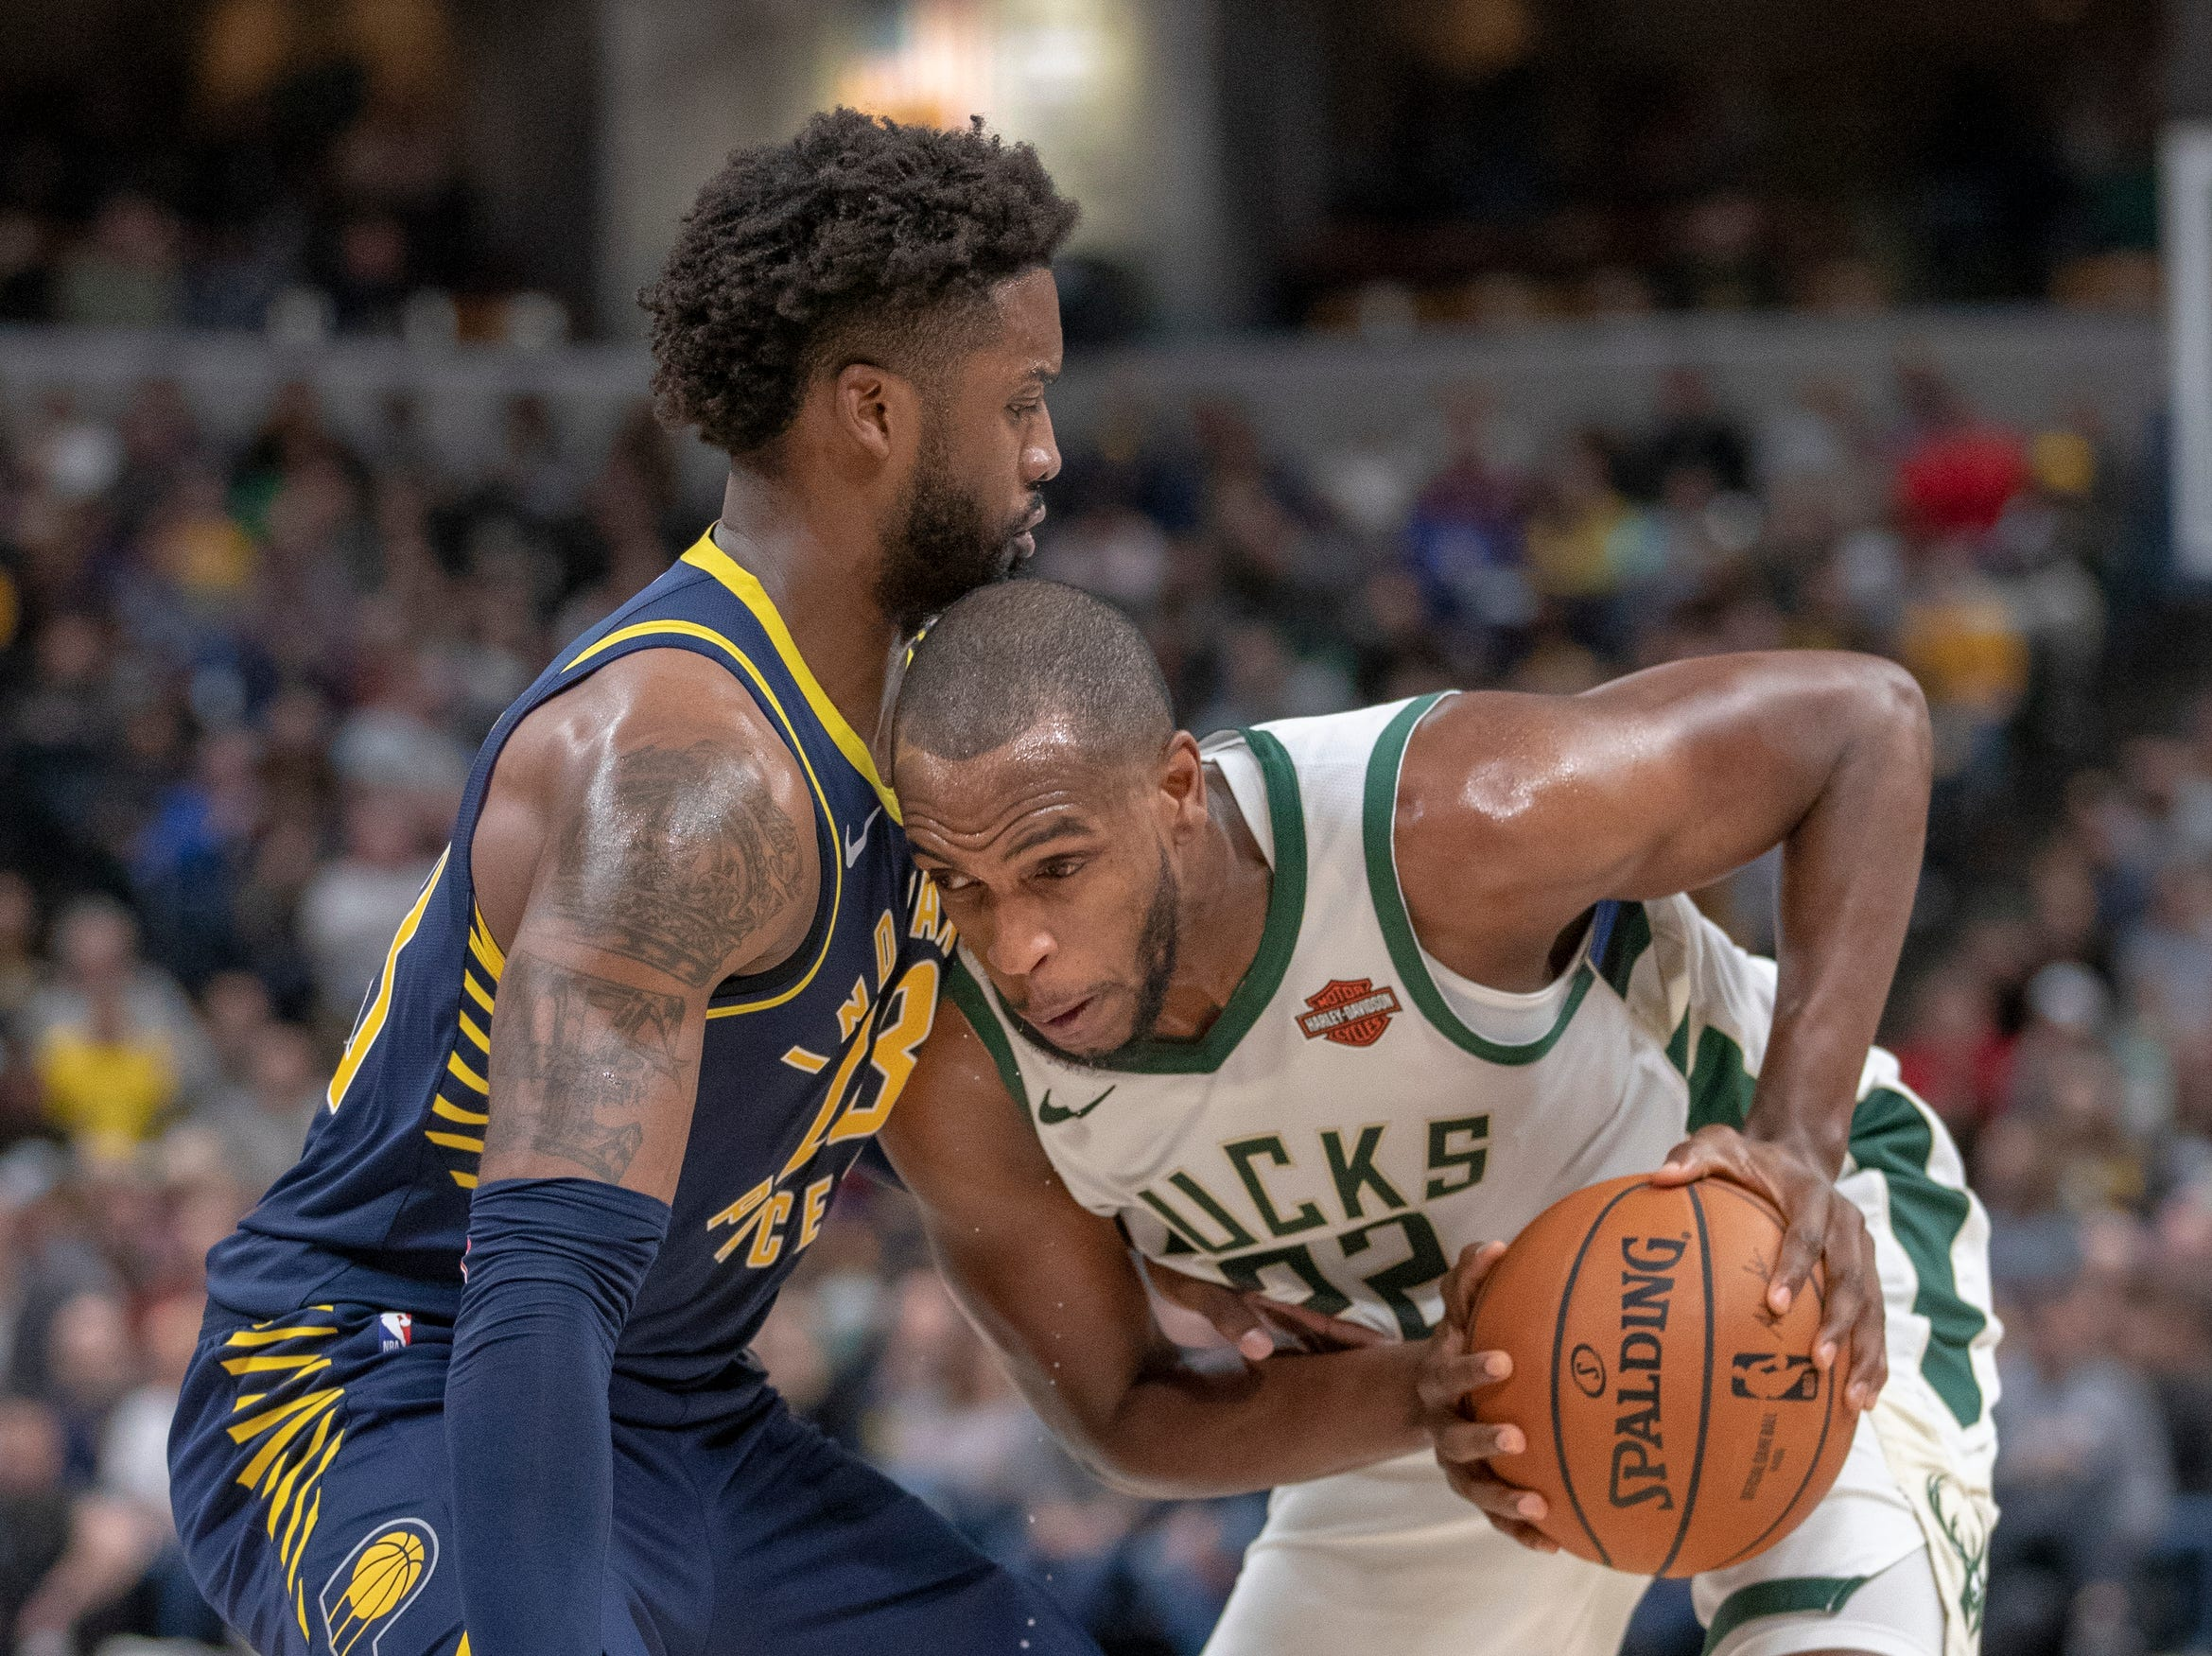 Wesley Matthews of the Indiana Pacers defends Khris Middleton of the Milwaukee Bucks, during game action, Bankers Life Fieldhouse, Wednesday, Feb. 13, 2019. Milwaukee won 106-97.